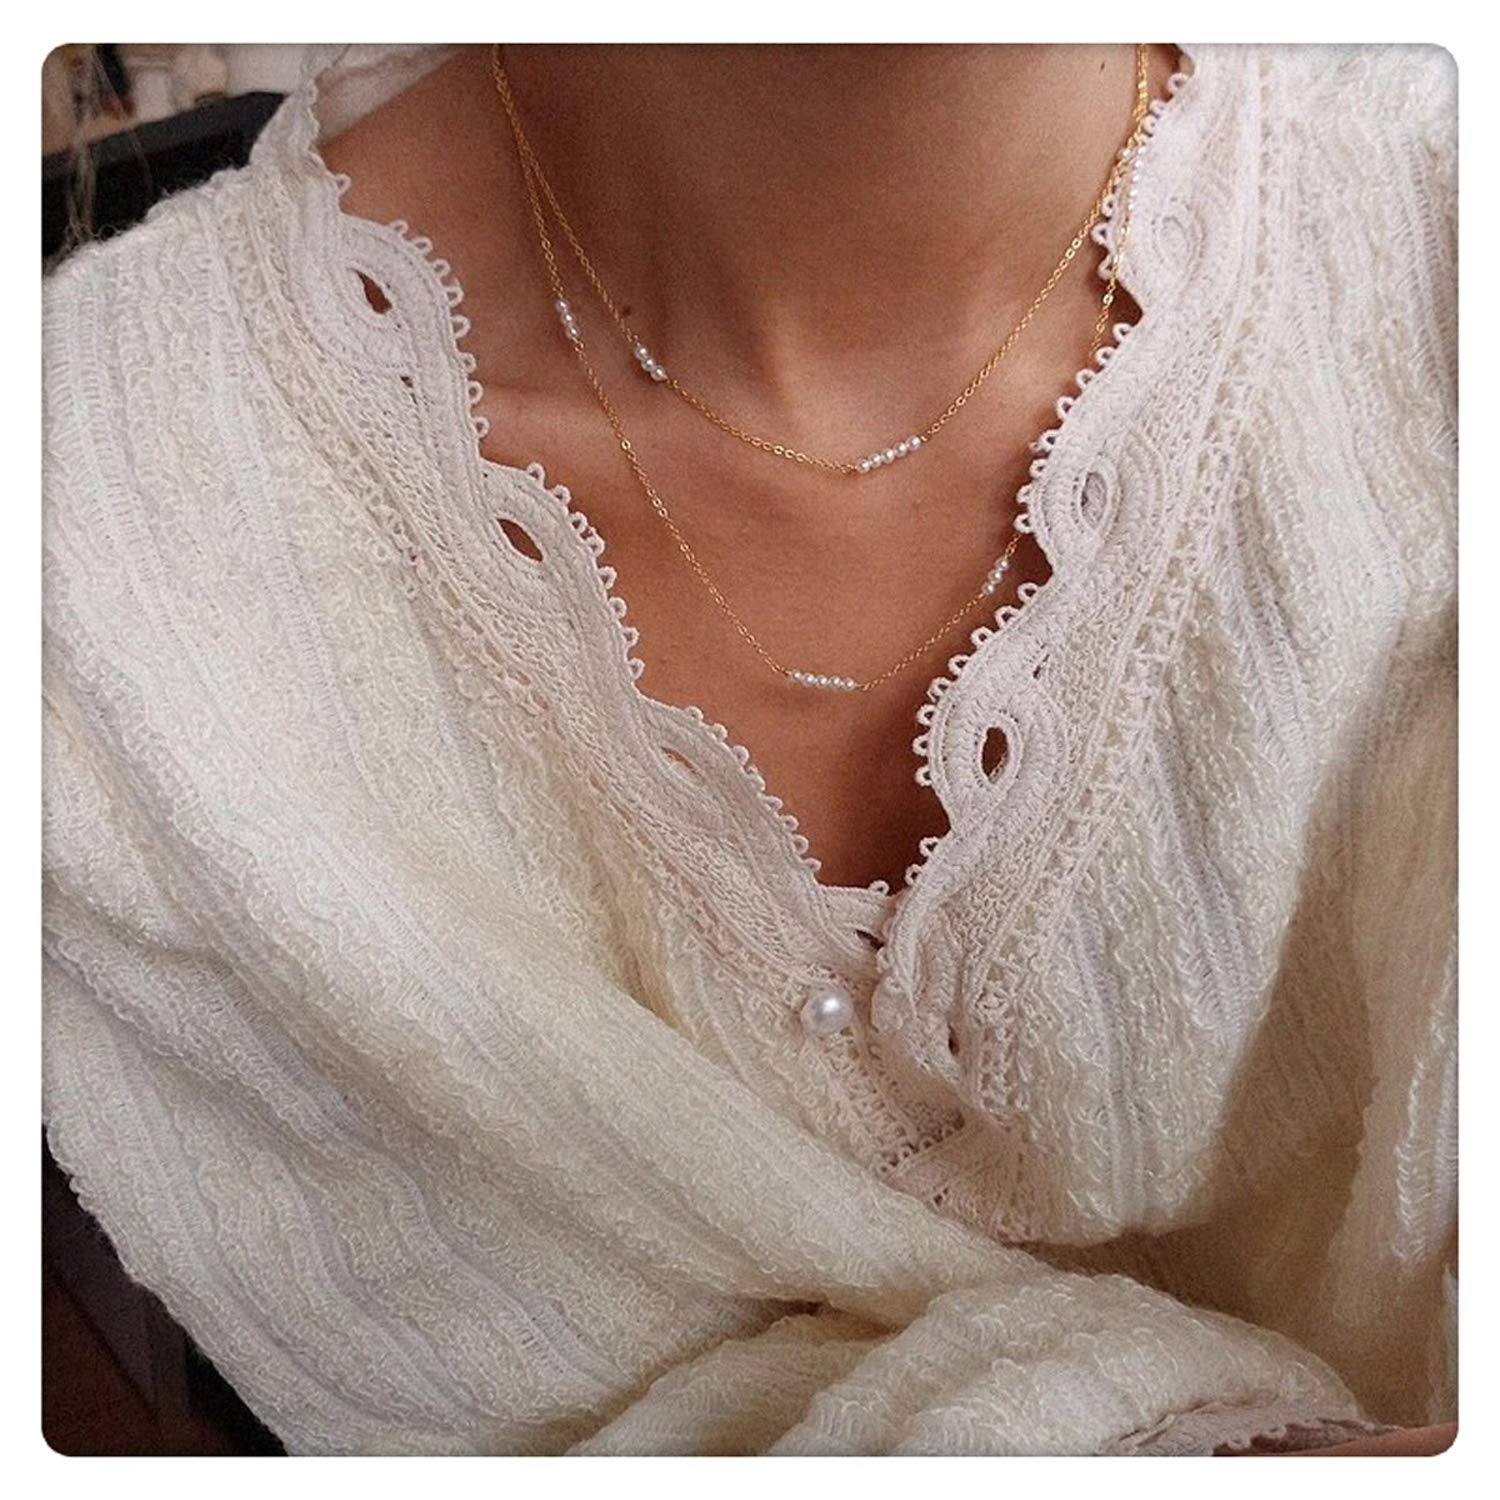 SEAYII Women Layered Necklace Choker Gold Initial Bar Pearl Dainty Chain 14K Gold Fill 2 Layer Boho Beach Simple Delicate Handmade Gold Jewelry Gift